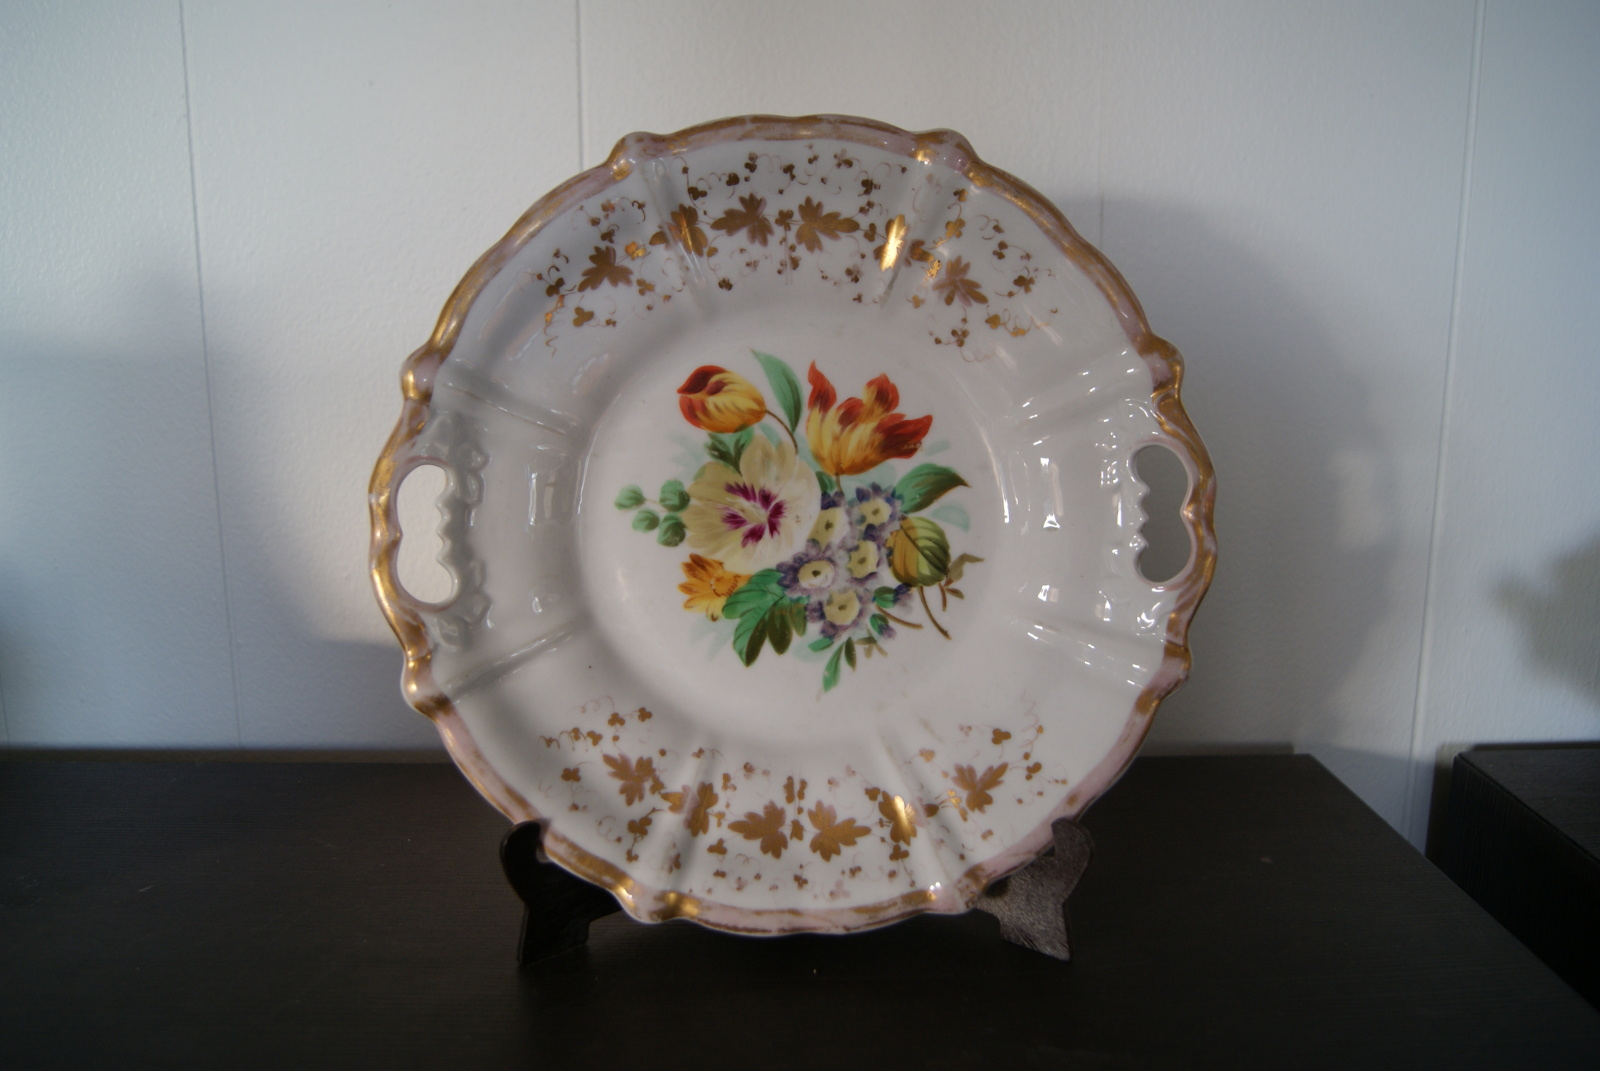 Waldenburg - Altwasser dish with bouquet, gold decor and relief